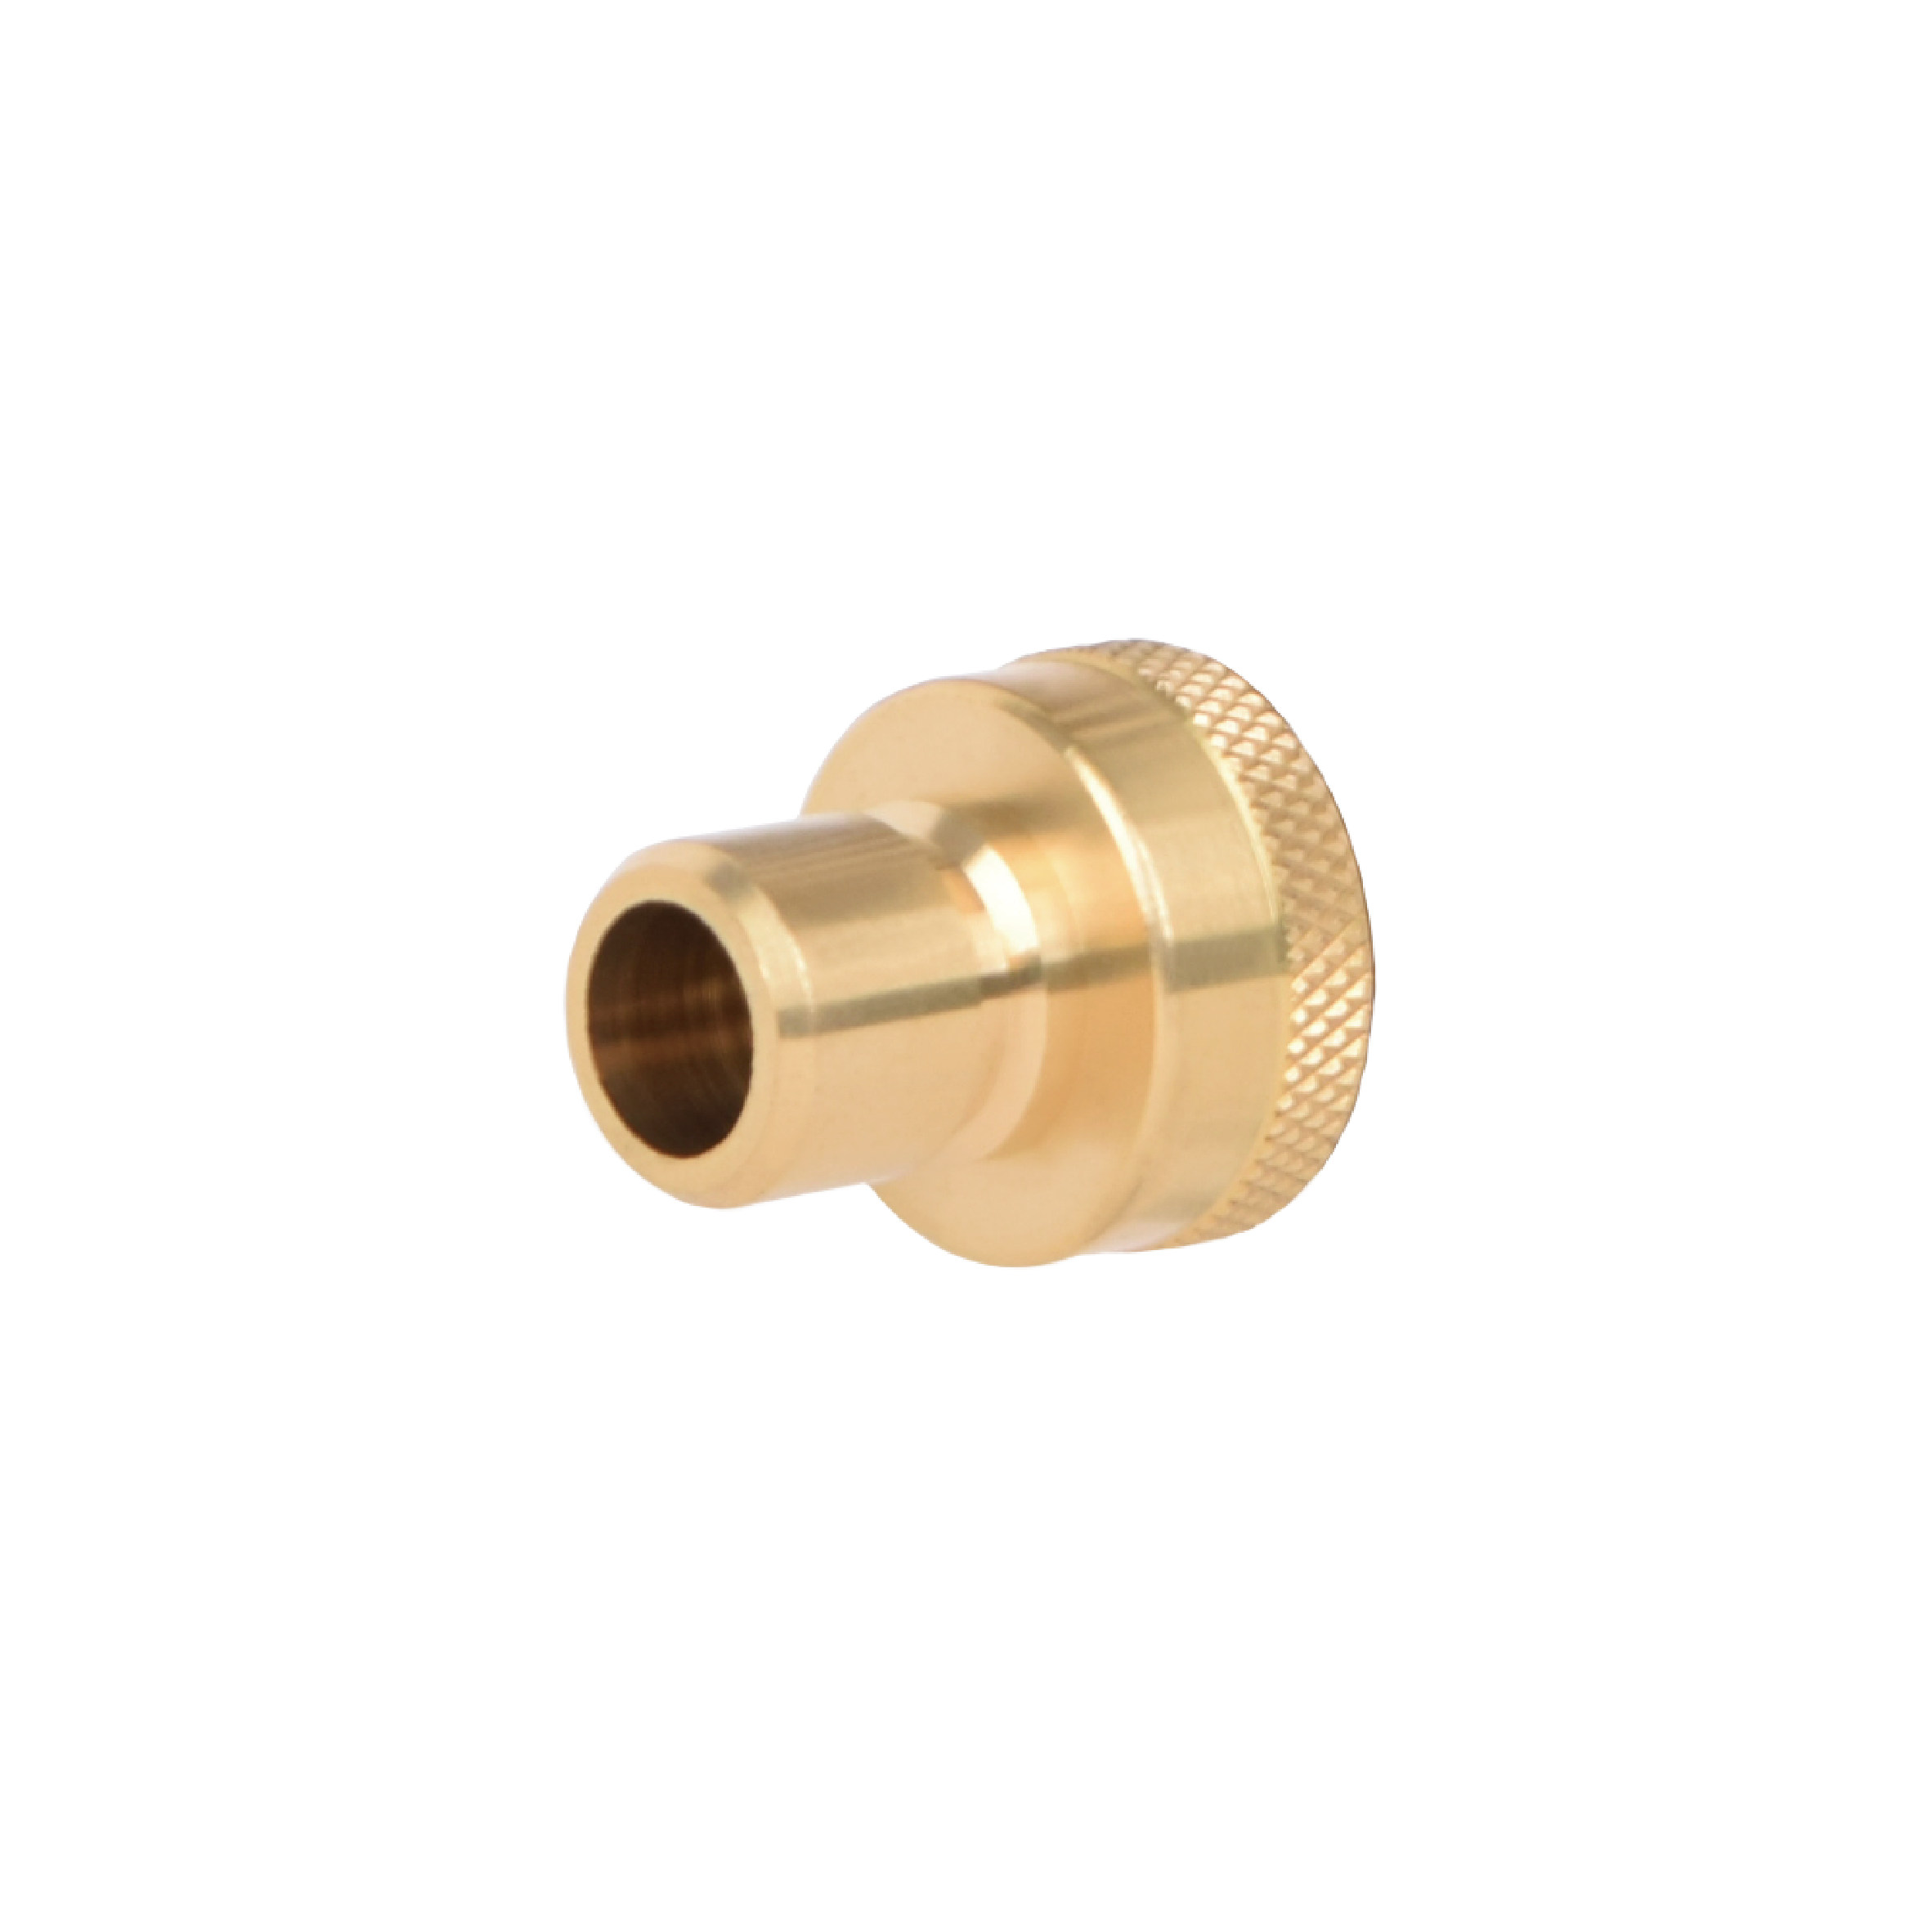 FAUCET CONNECTOR - FEMALE